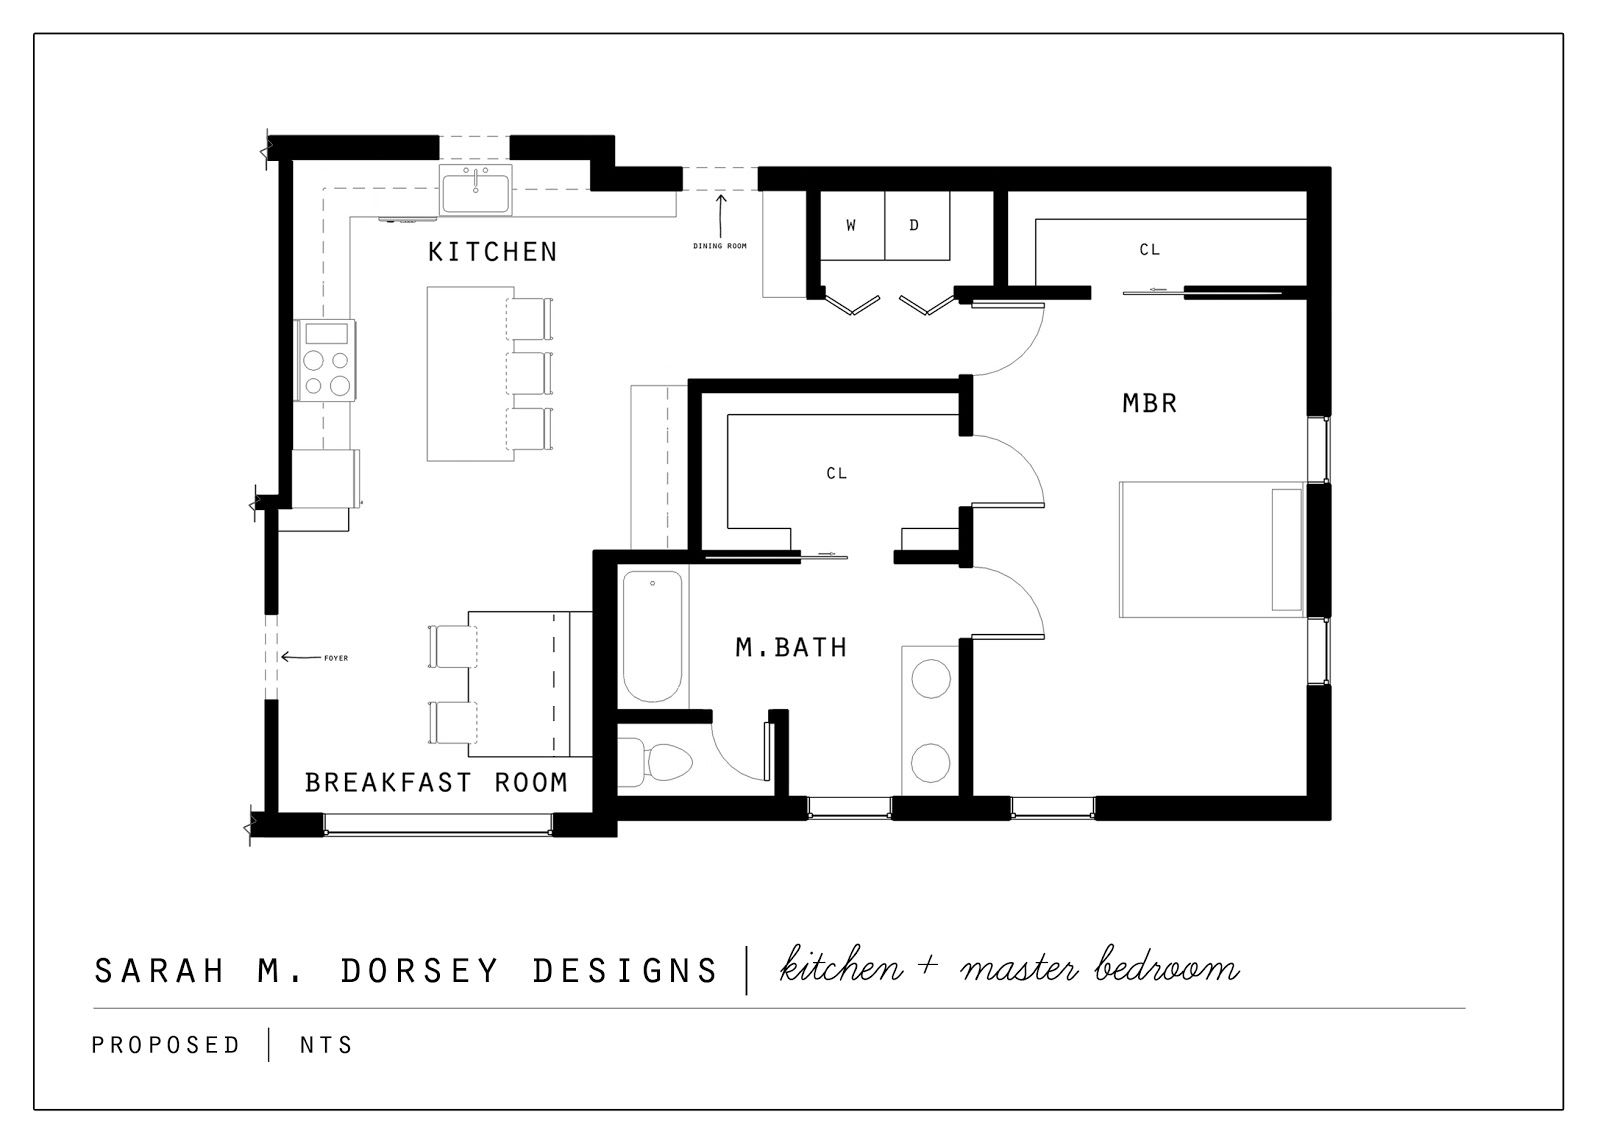 Floor plans for master bedroom additions bedroom Plans for additions